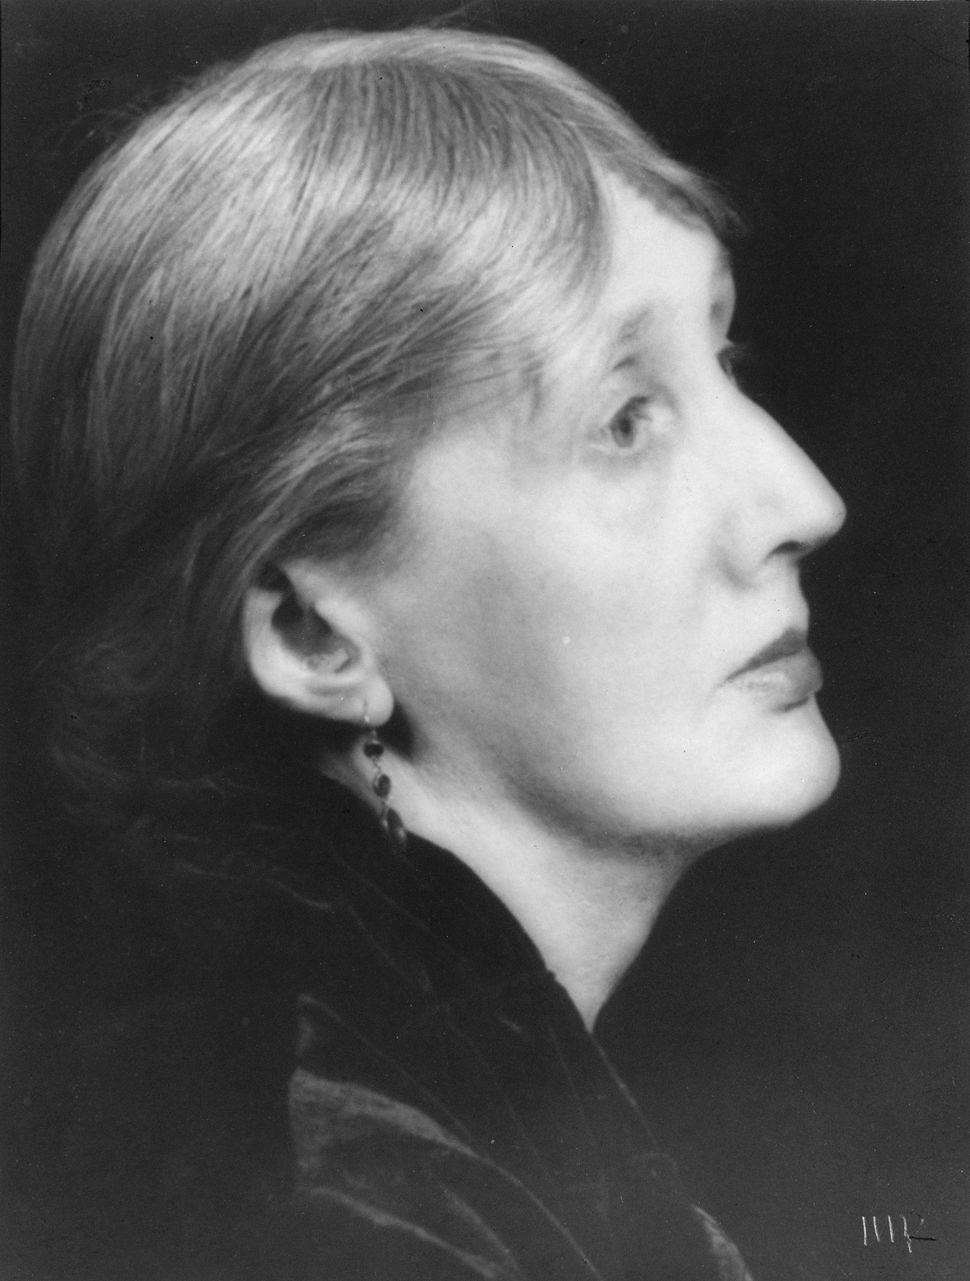 Virginia Woolf by Man Ray, 27 November 1934 © Rheinisches Bildarchiv Cologne © Man Ray Trust / ADAGP, Paris and DACS, London